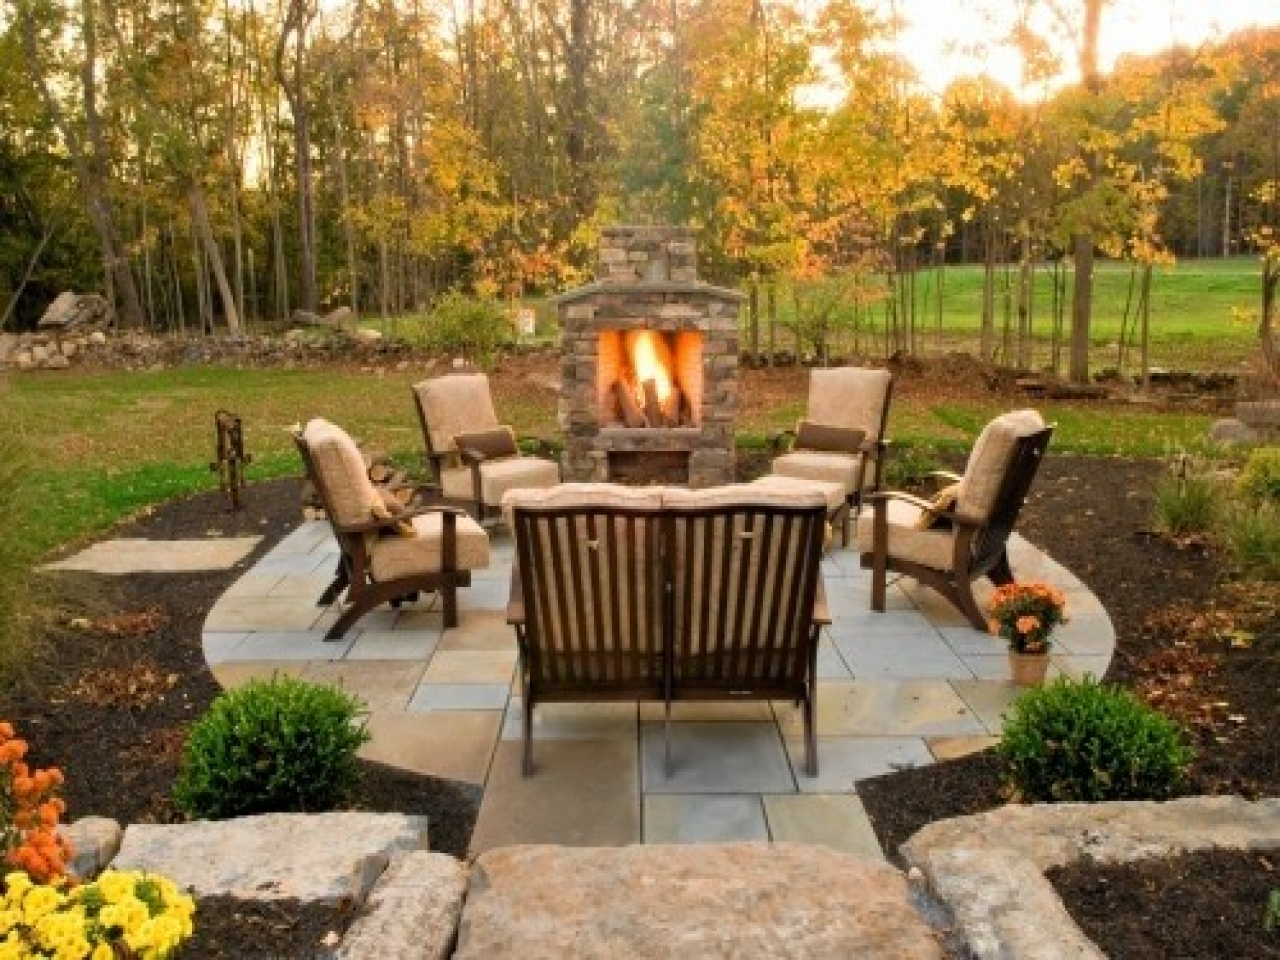 Ideas of ... Brilliant Outdoor Fireplace Patio For Your Small Home Interior Ideas  with outdoor fireplace patio